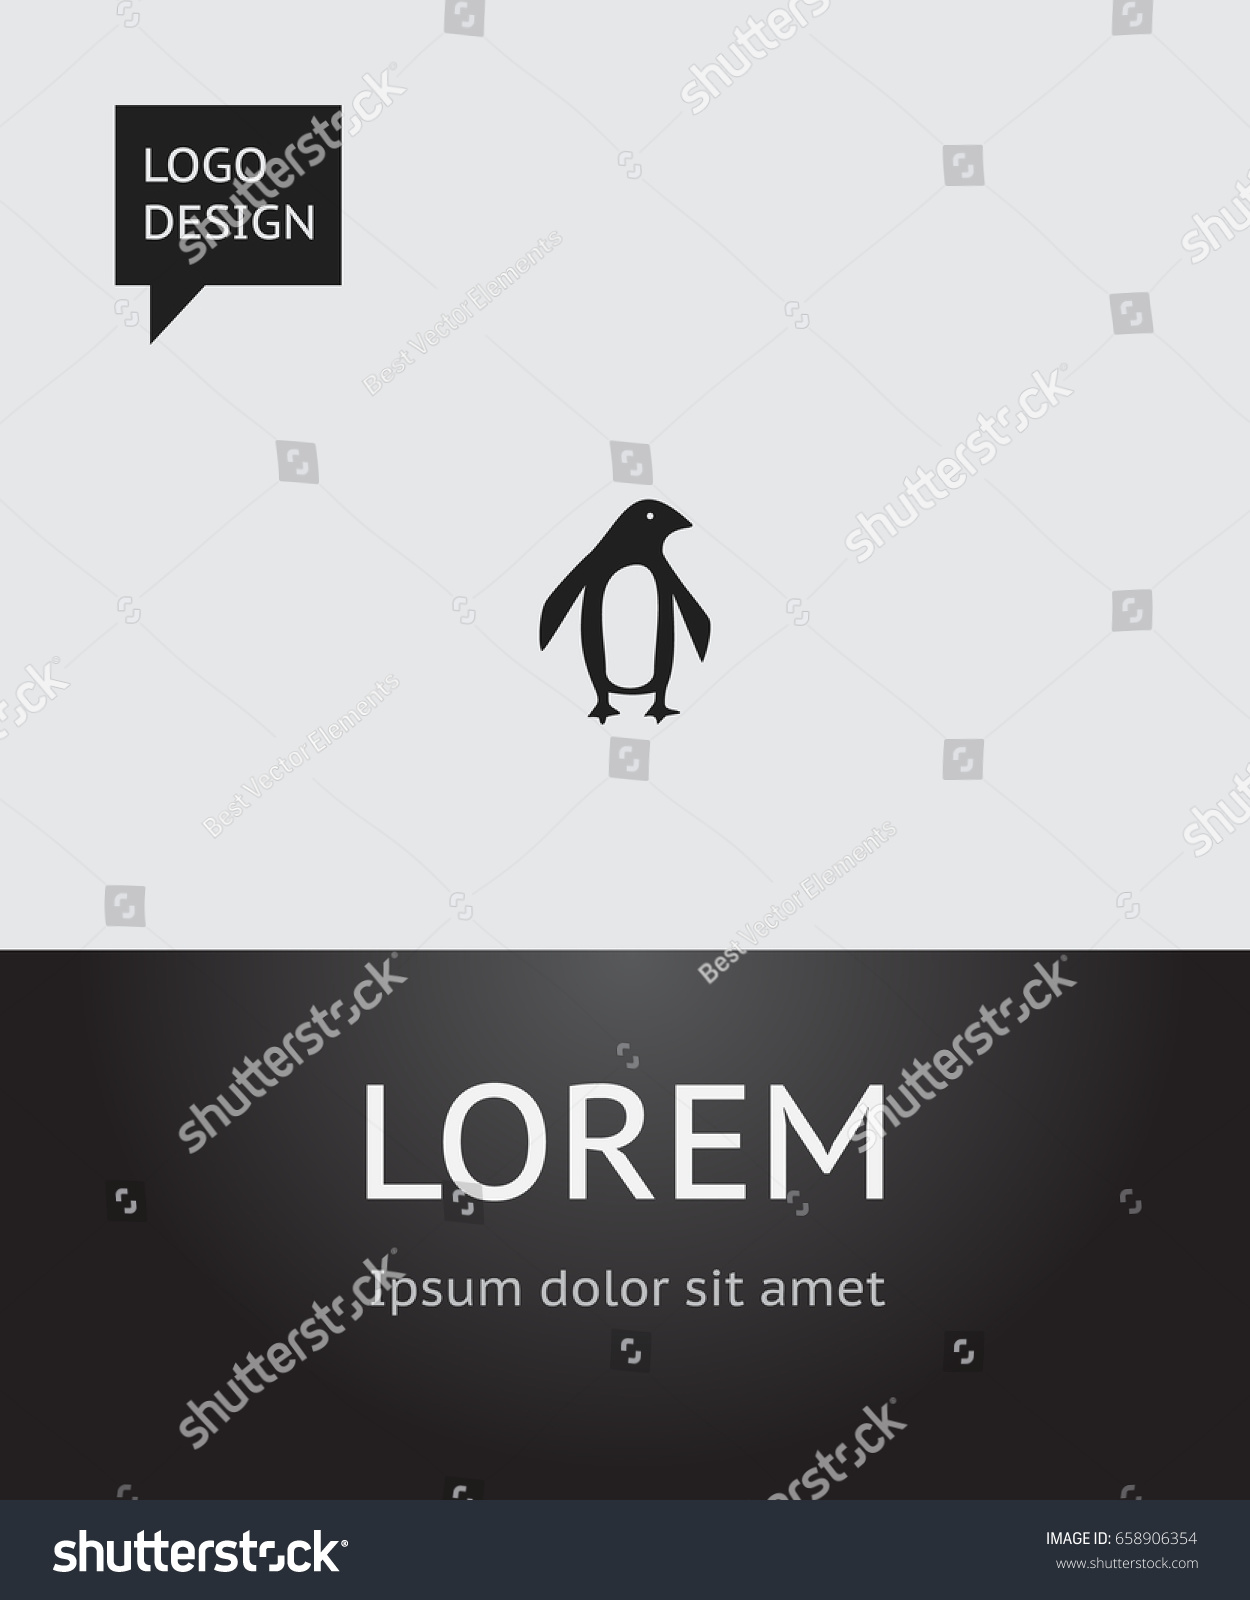 Zoology poster design - Vector Illustration Of Zoology Symbol On Penguin Icon Premium Quality Isolated Diver Element In Trendy